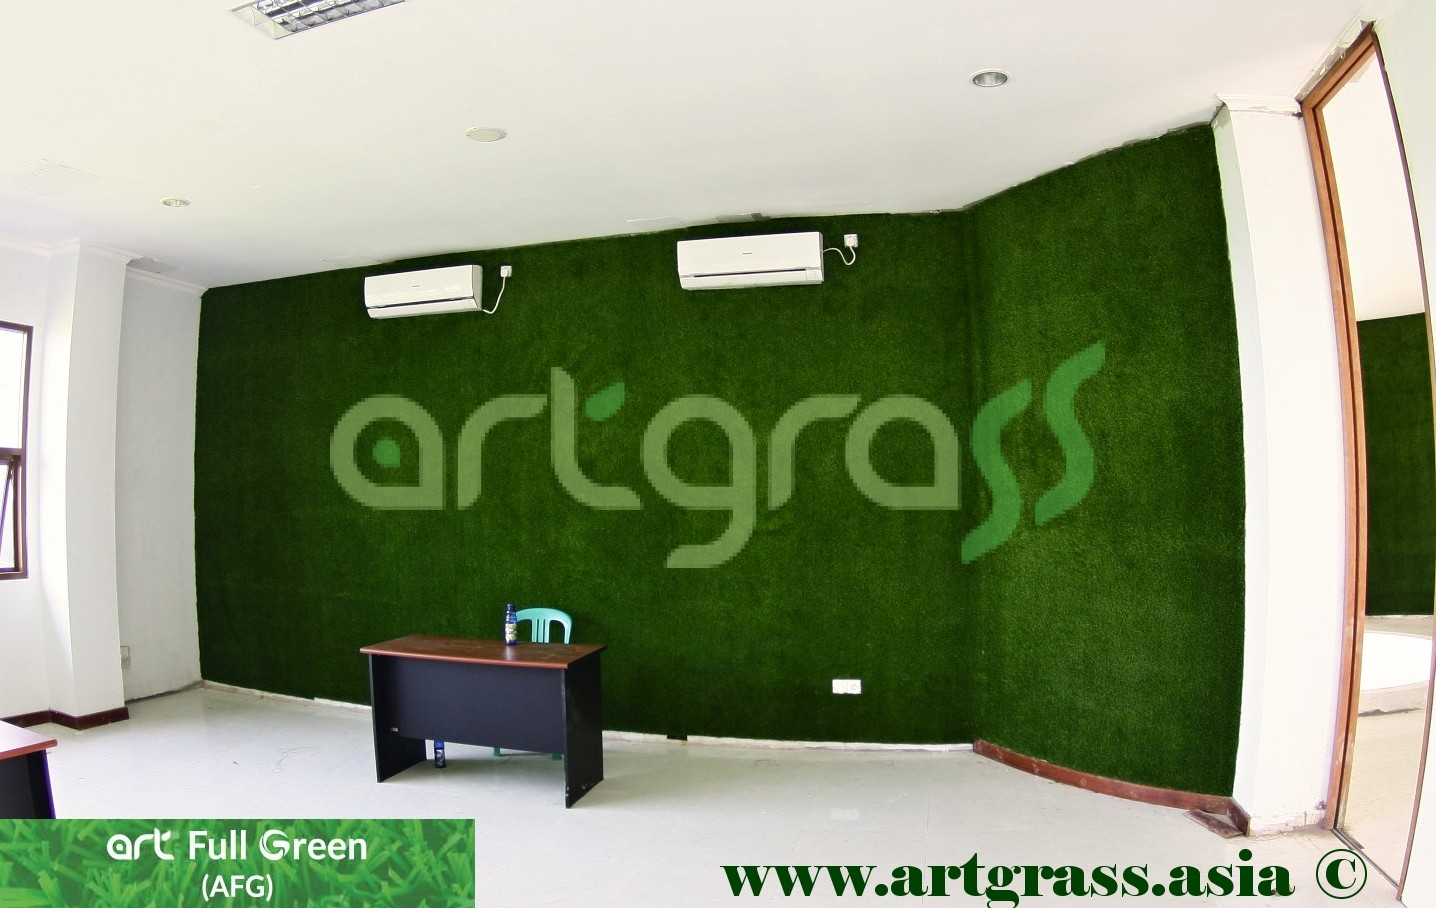 ArtGrass-Dinding-Meeting-Room-W1Lt3-Rumput-Sintetis-High